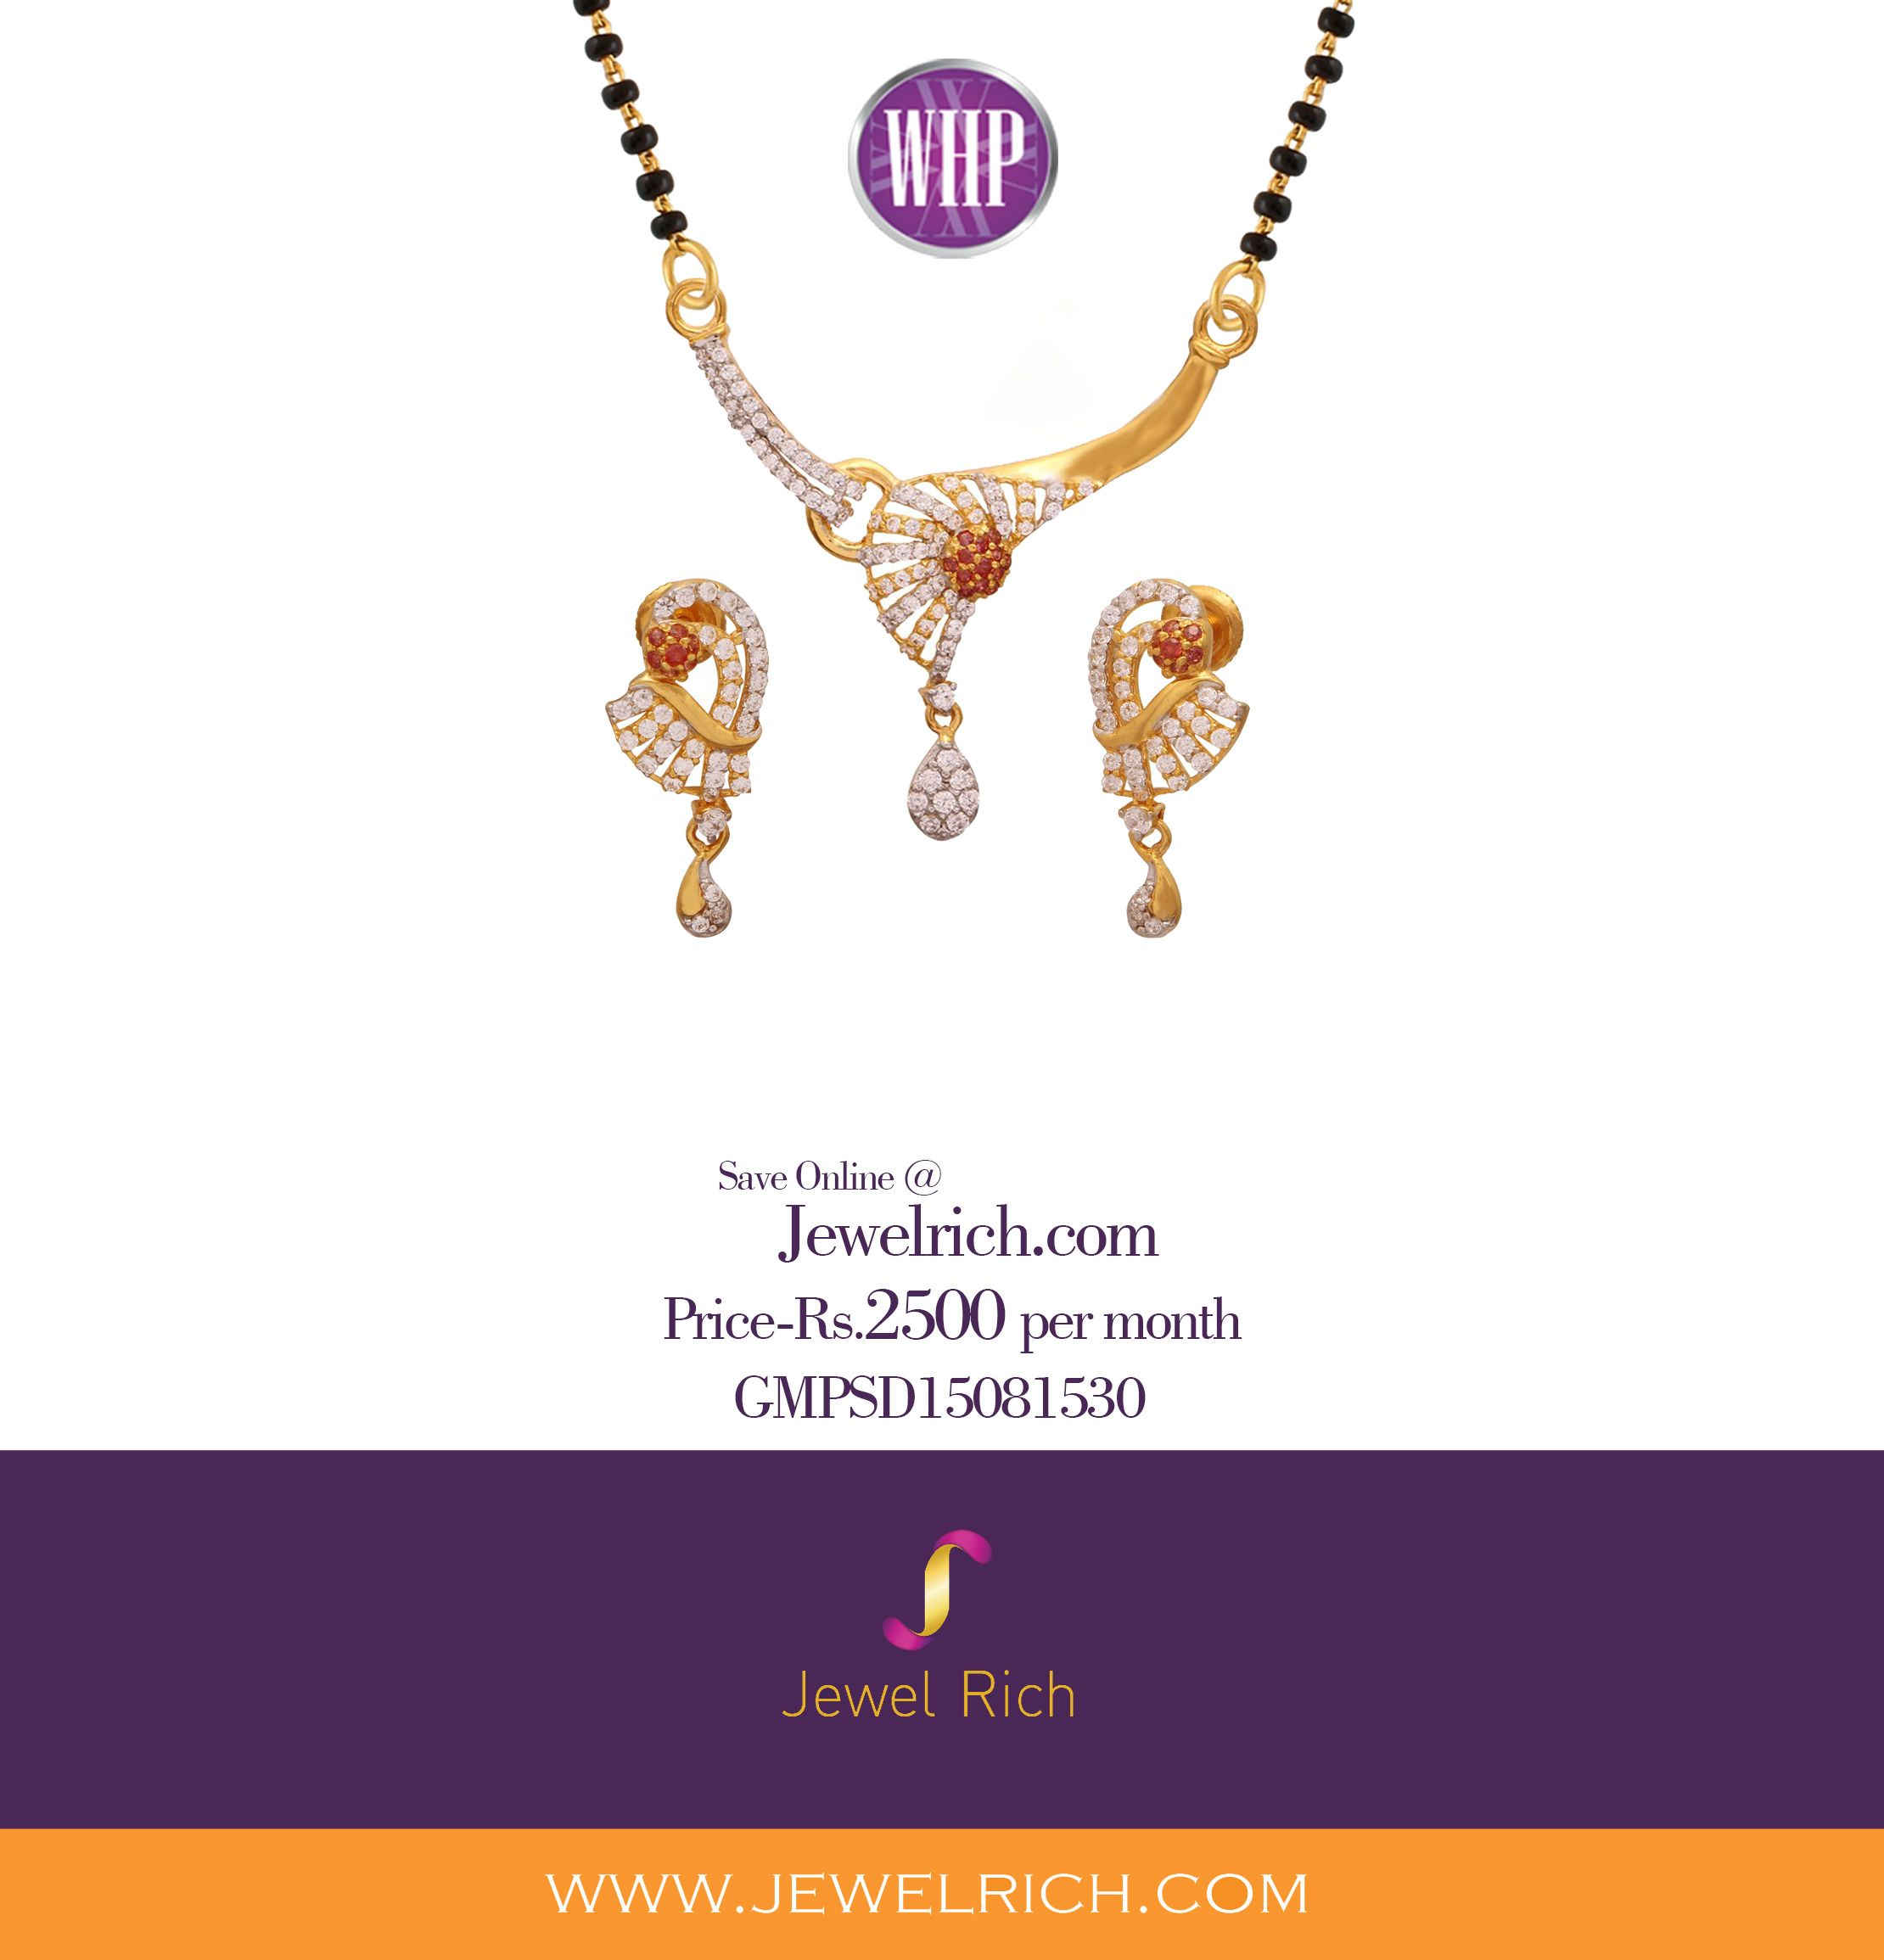 Start owning this mangalsutra pendant set for rs per month for